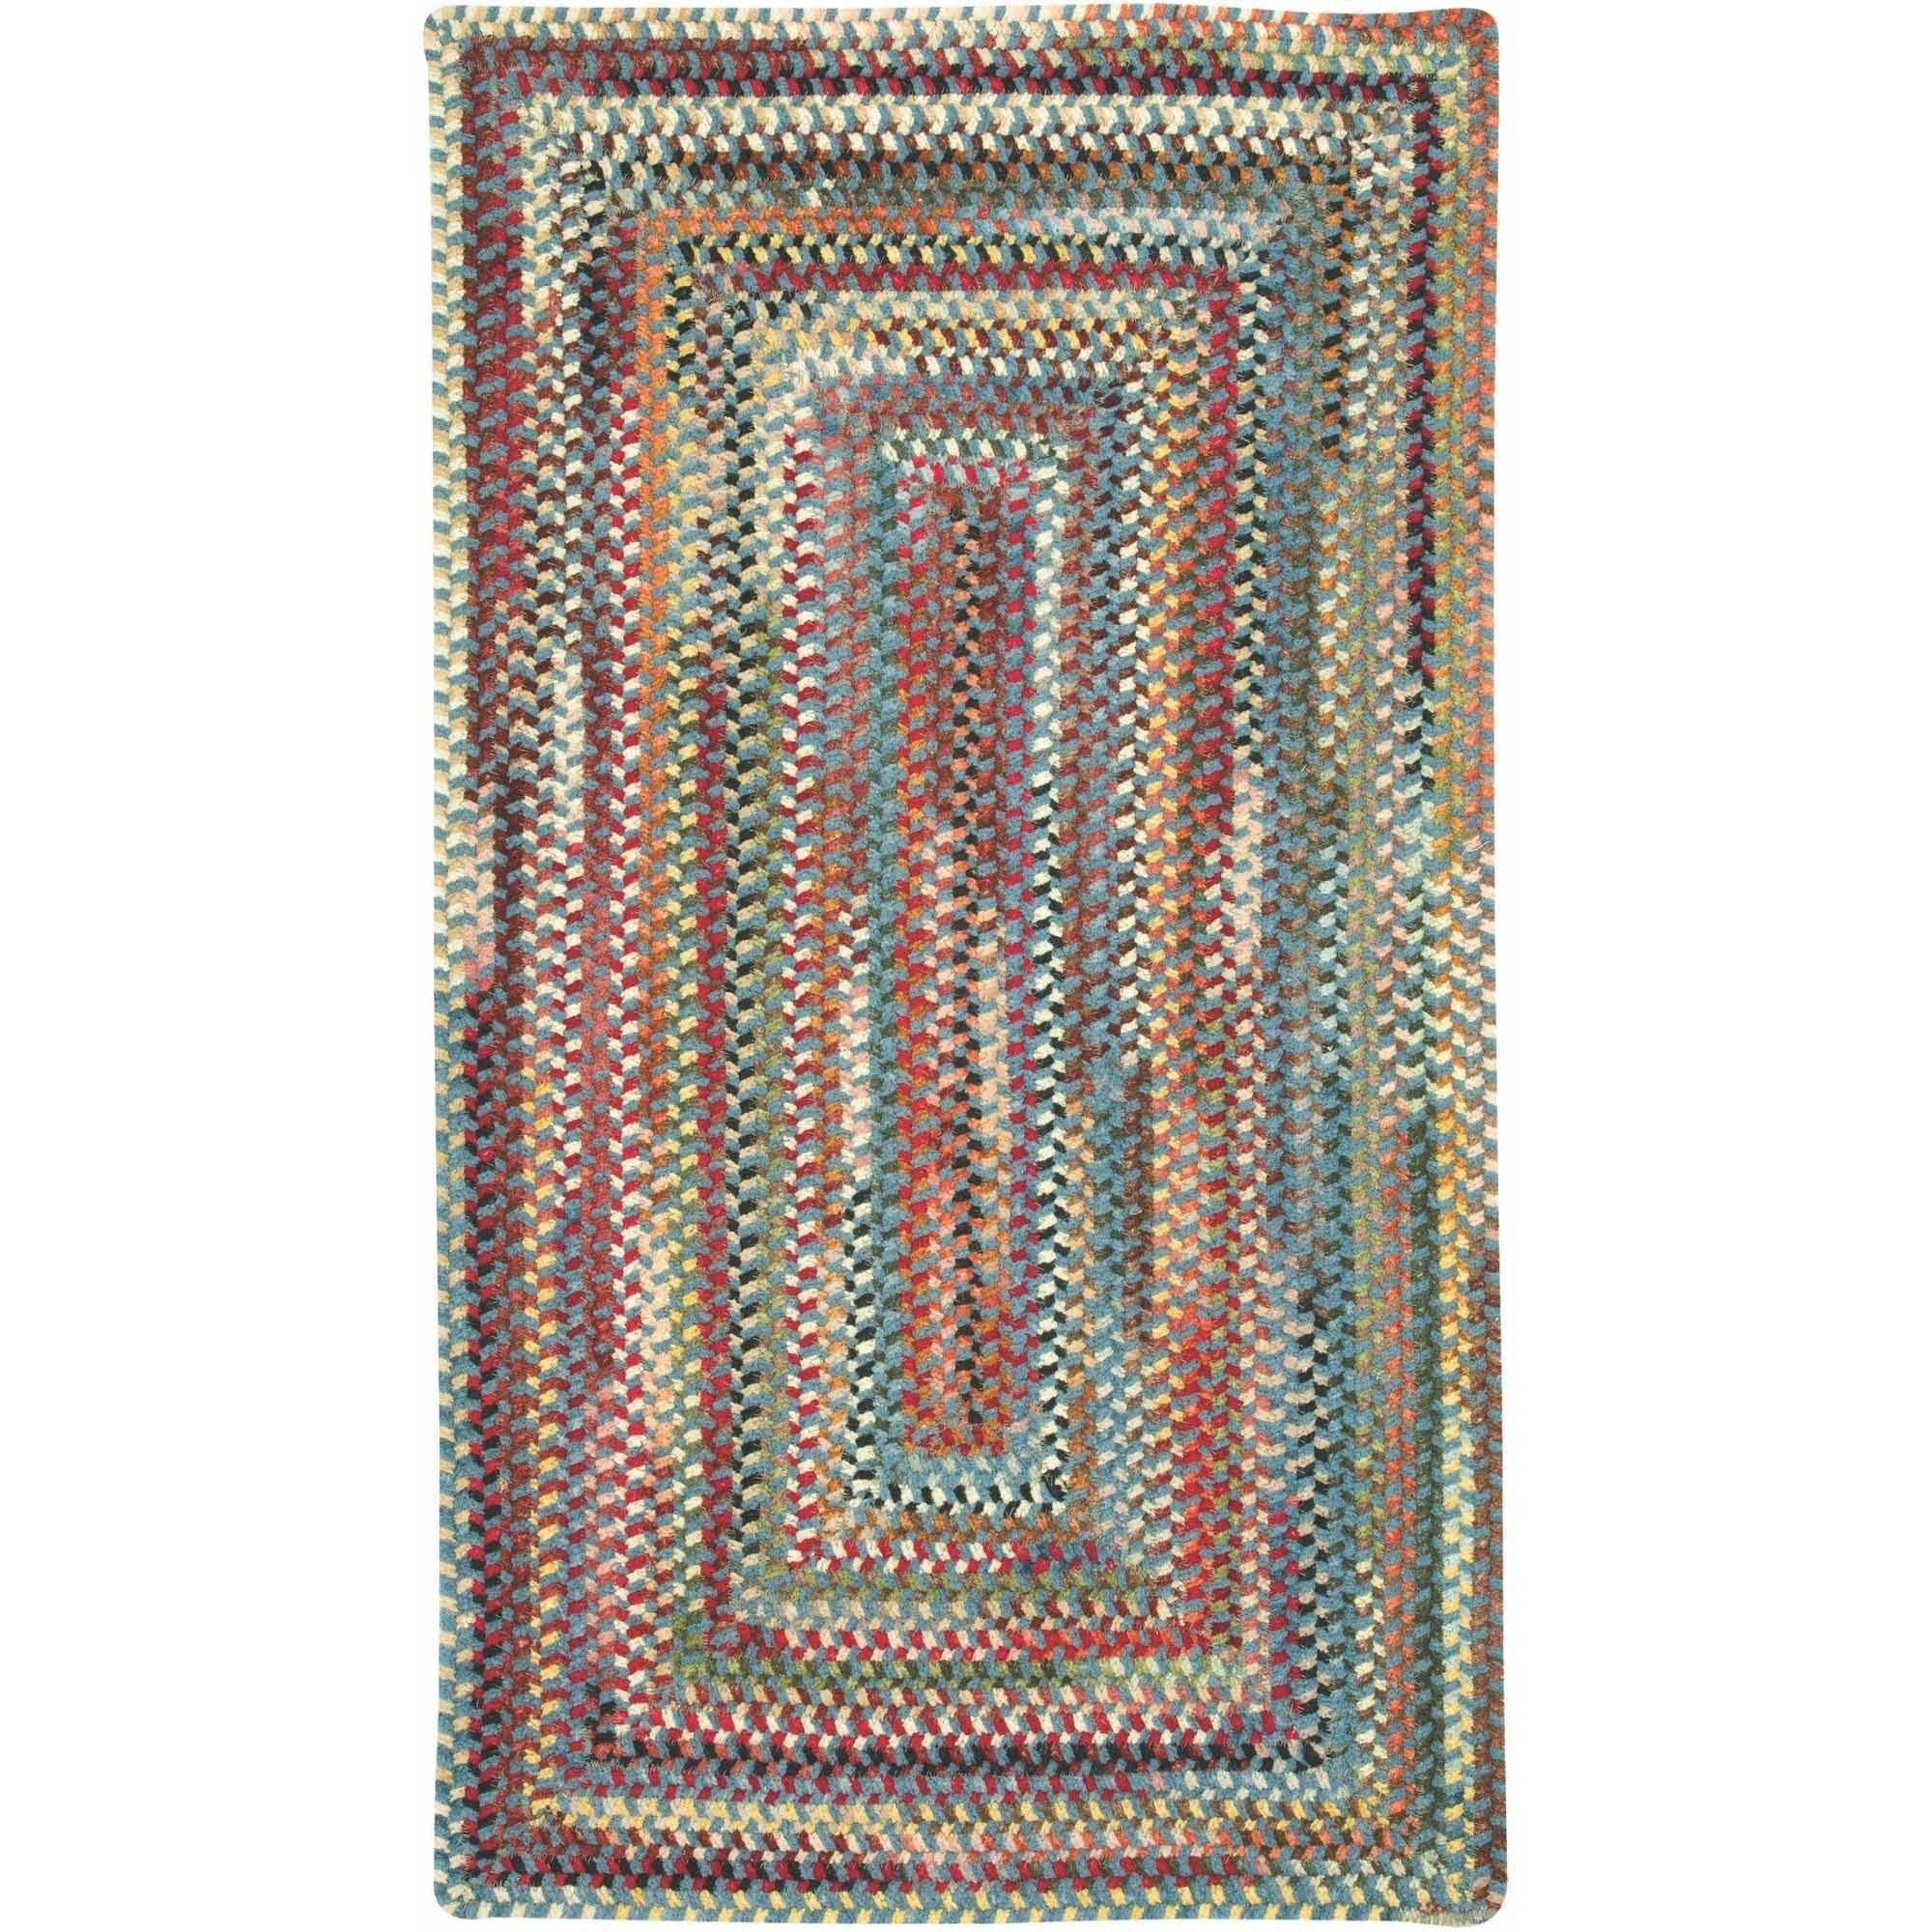 Eaton Concentric Braided Area Rug